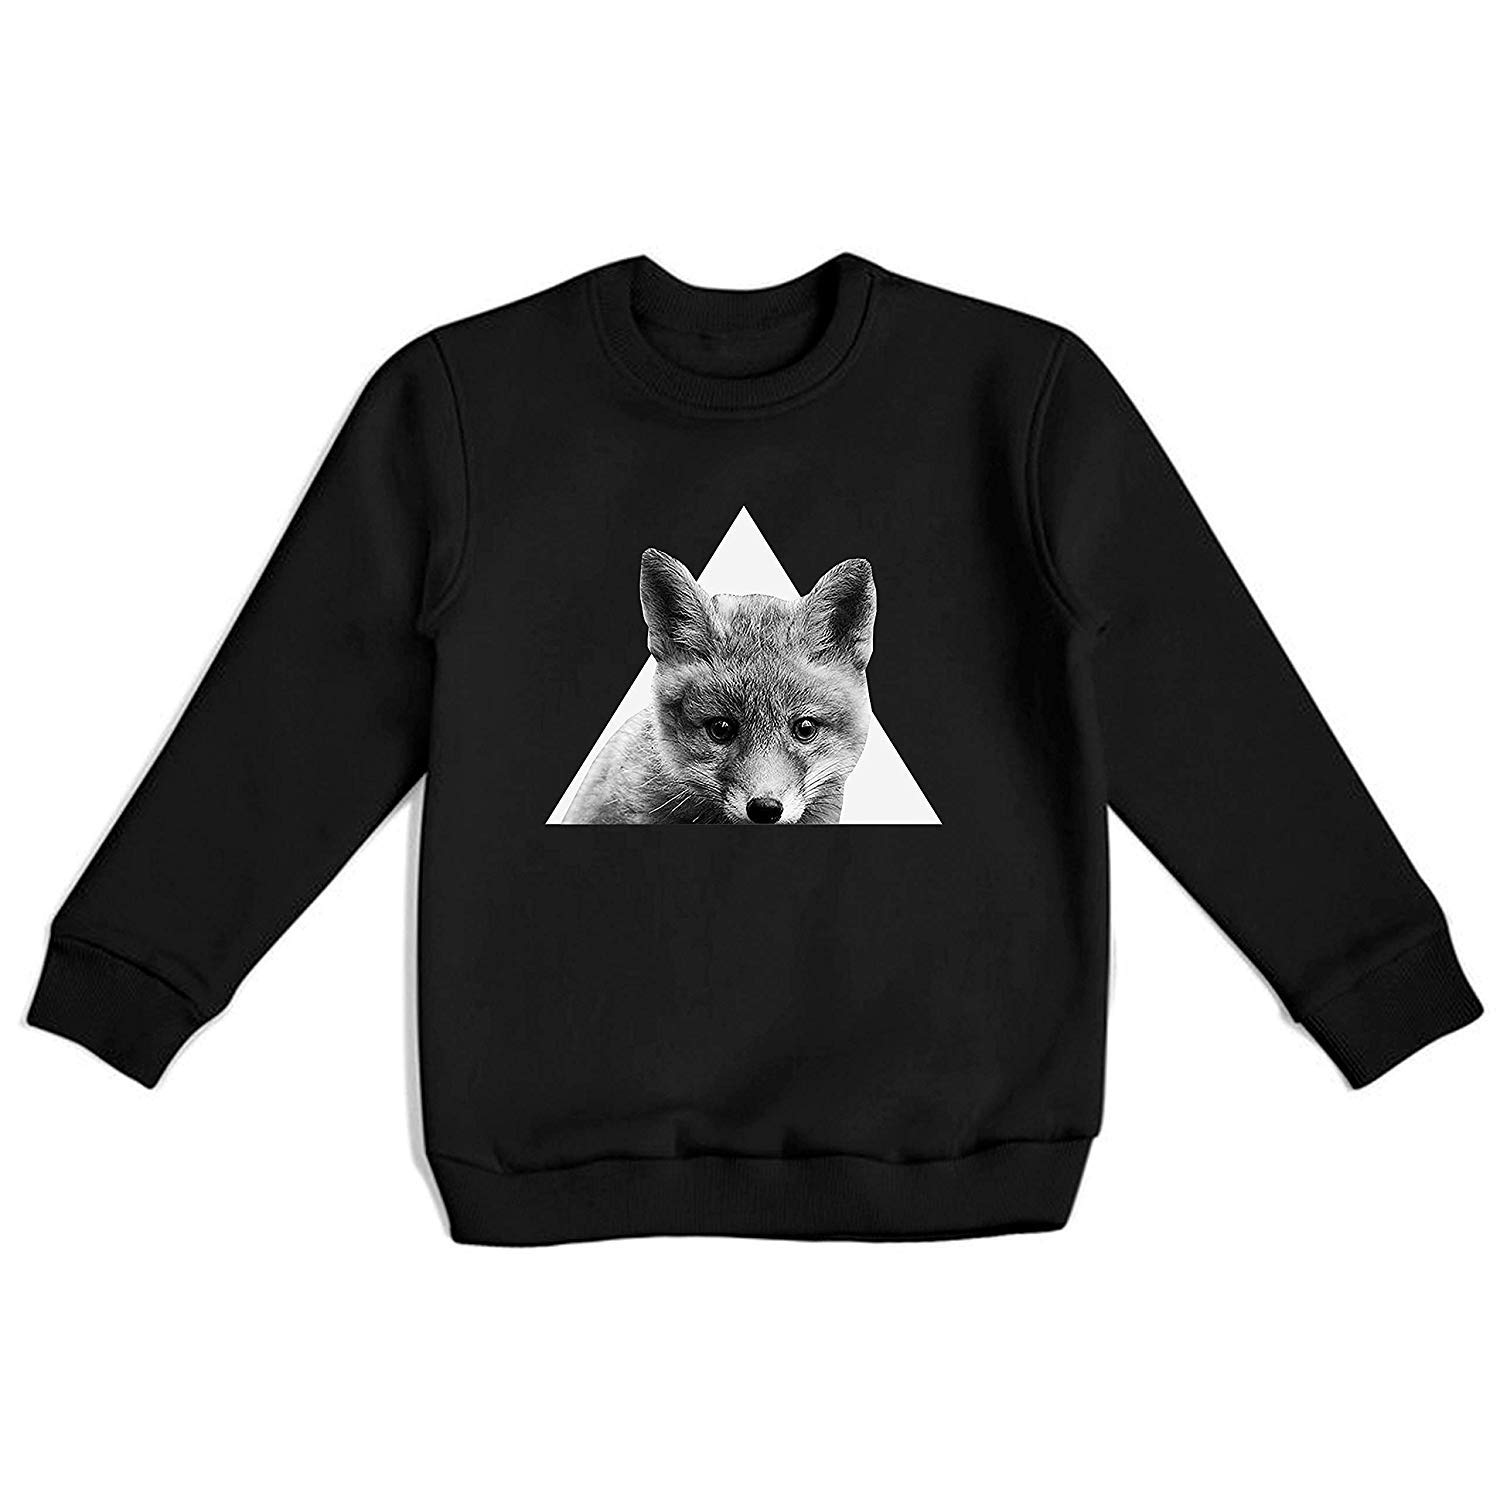 Little Fox Sweatshirt Unisex Top Cute Animals Design Teen Clothing Long Sleeve Girl for Adults Idea Shirt